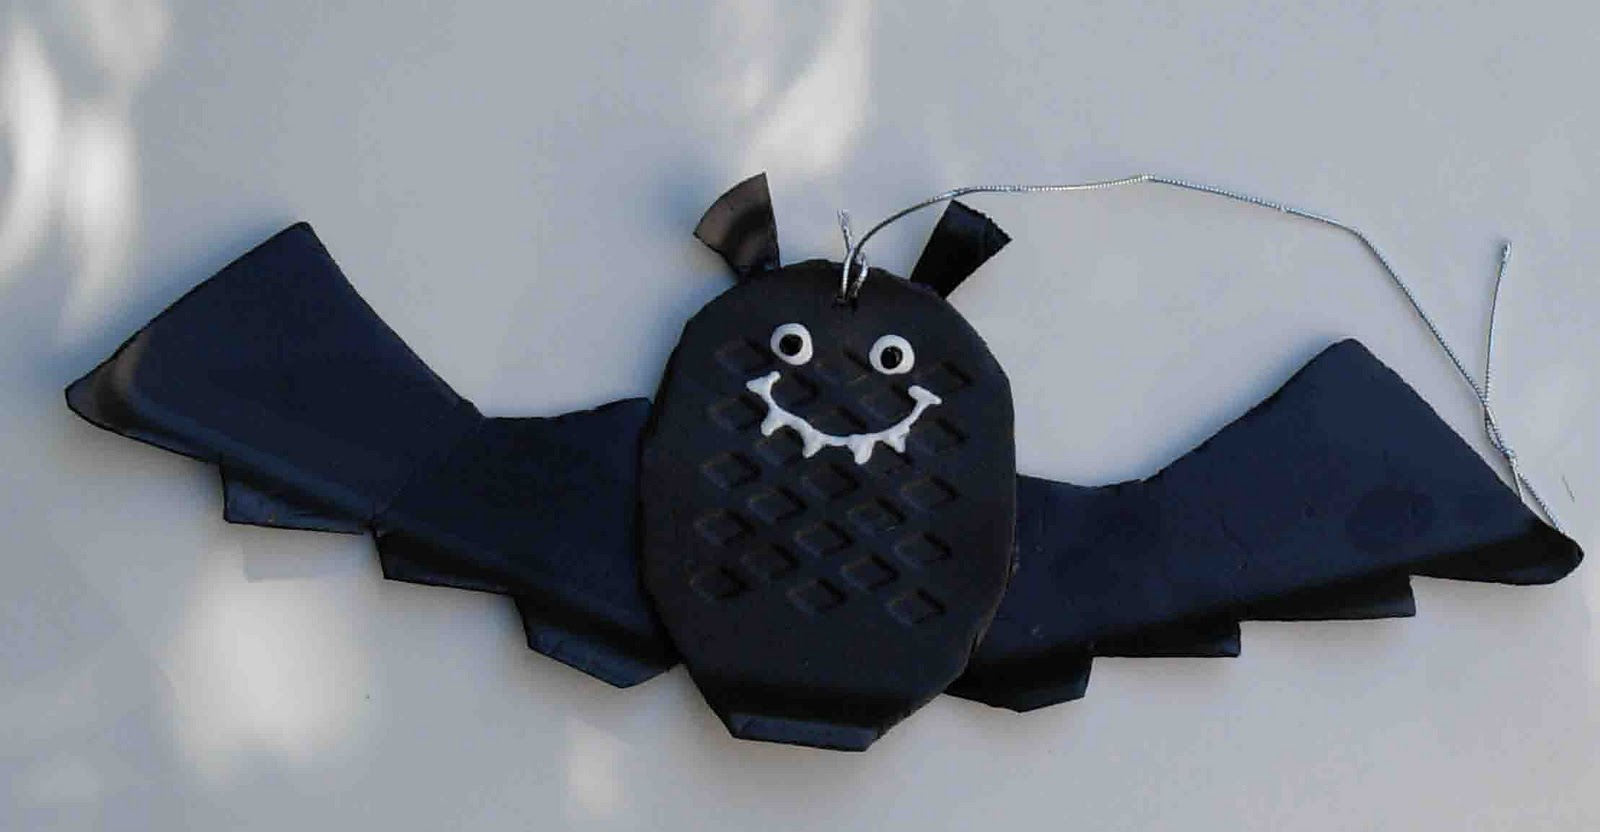 Bat Decorations From Foam Veggie Trays